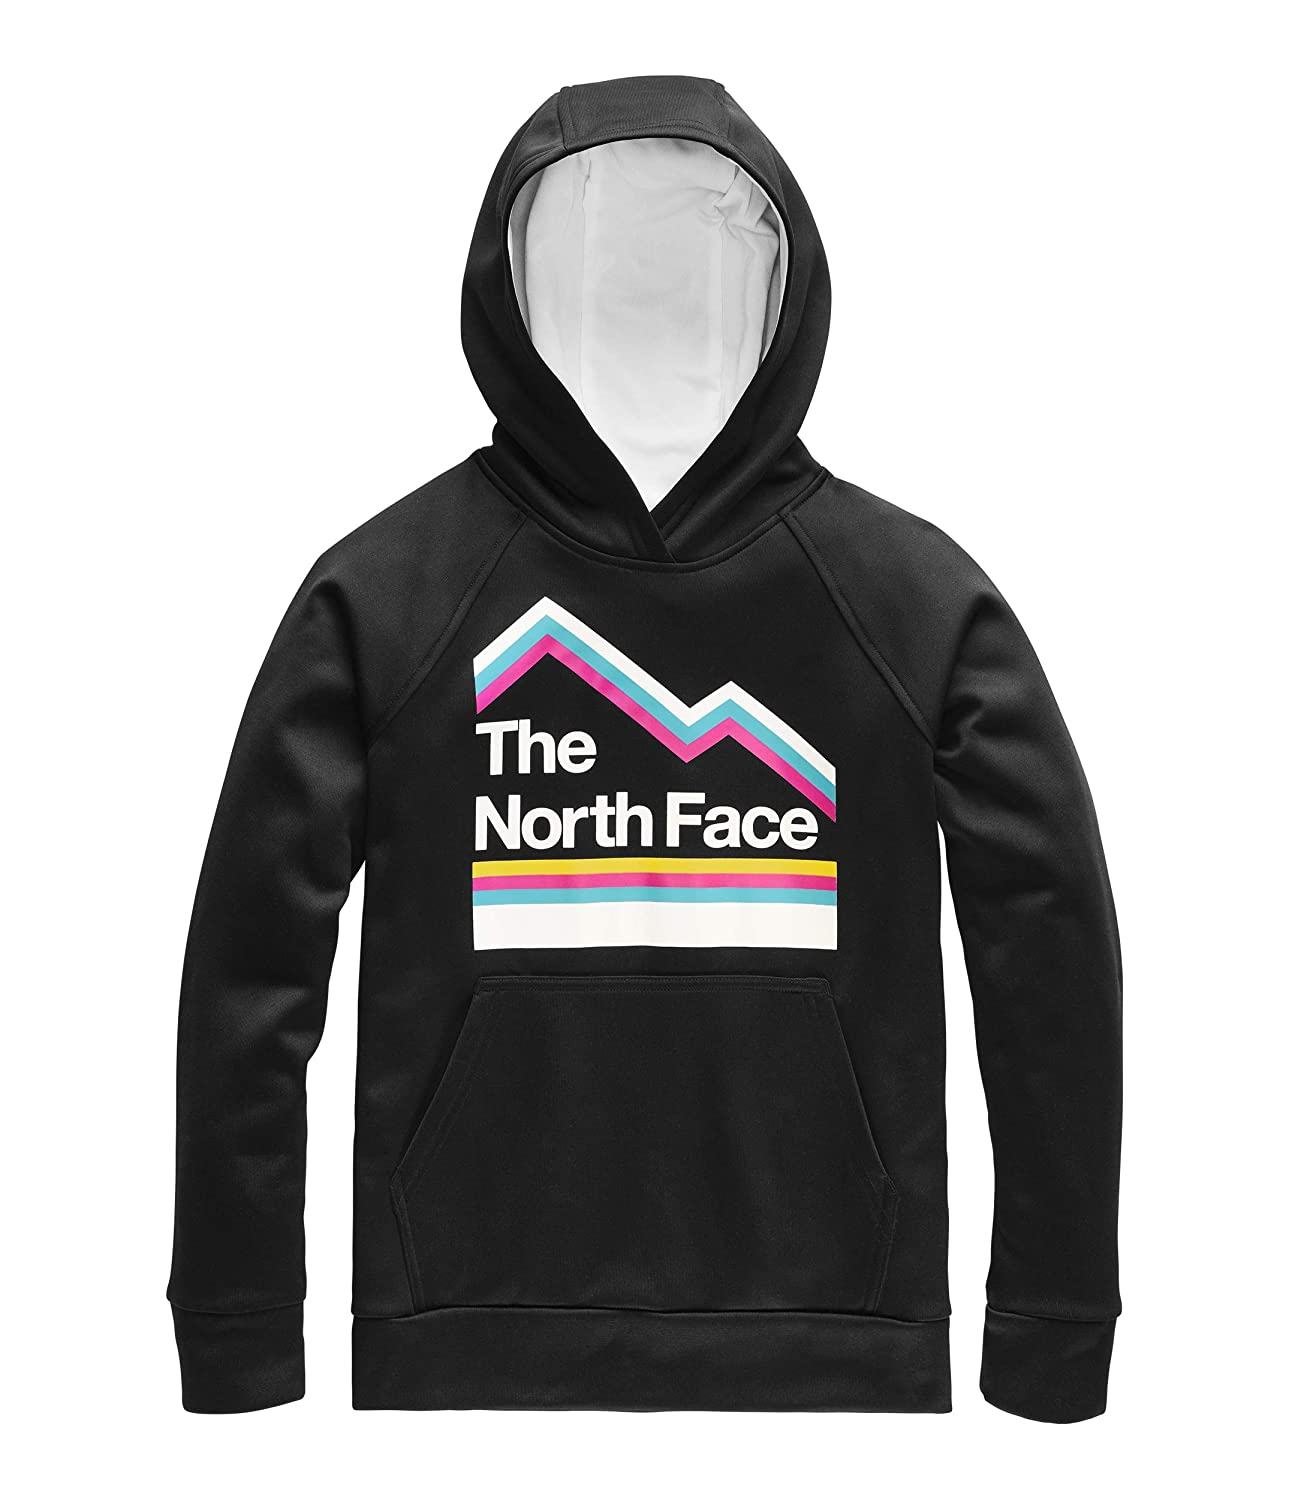 71d32907be7 The North Face Kids Boy's Surgent 2.0 Pullover Hoodie (Little Kids/Big Kids)